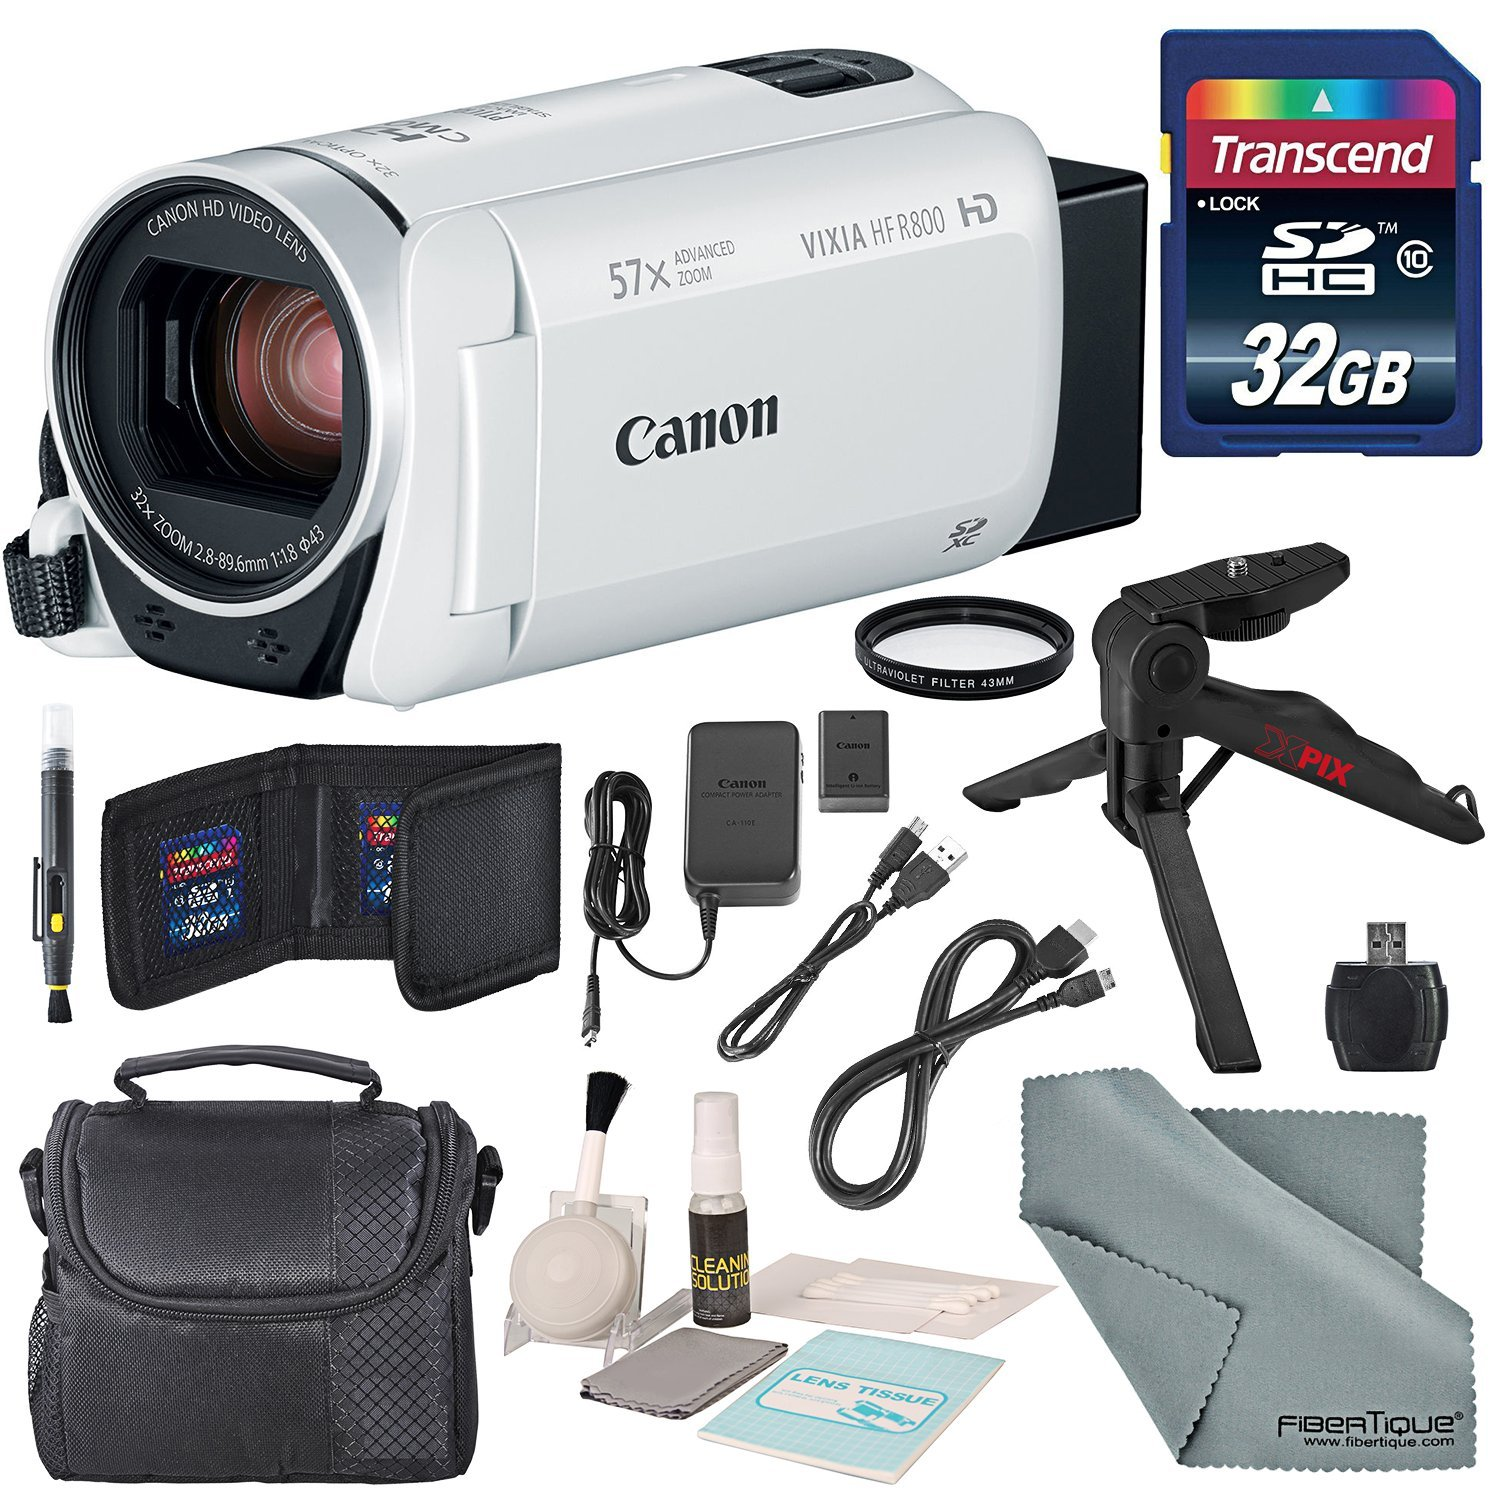 Canon Vixia HF R800 HD Camcorder (White) Bundle W/ 32GB SD Card, Camcorder Case, Cleaning Accessories and Fibertique Cleaning Cloth by Photo Savings